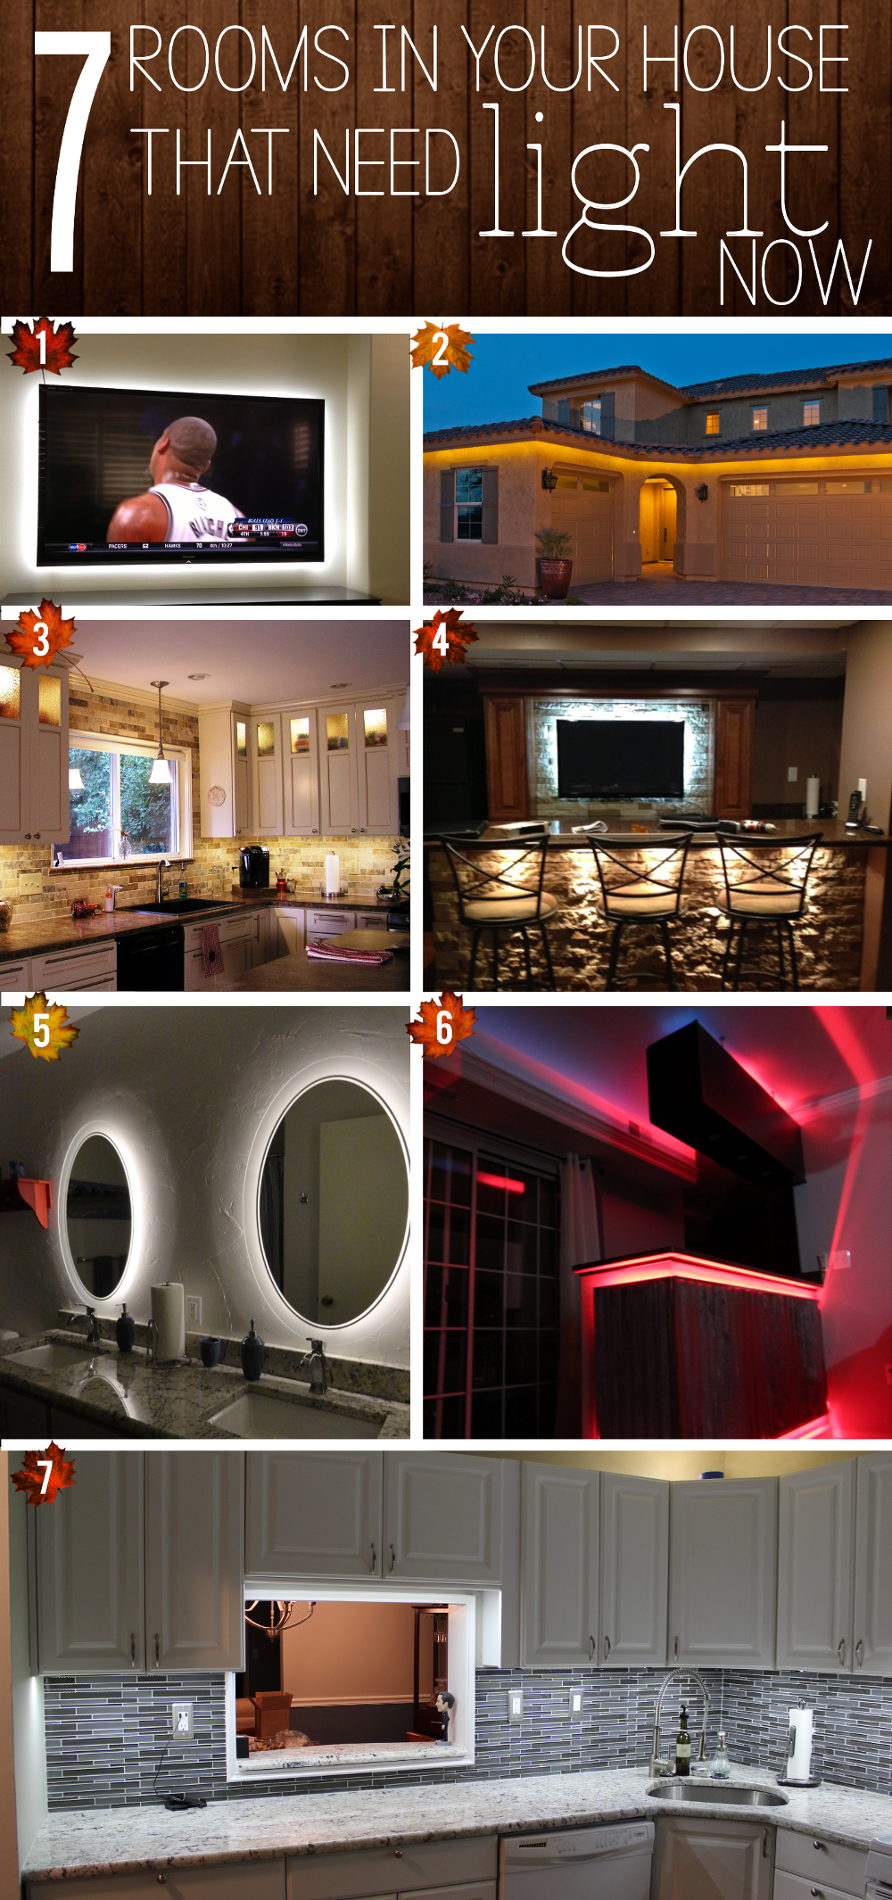 7 Rooms In Your House That Need Light Now Led Lighting Guide For